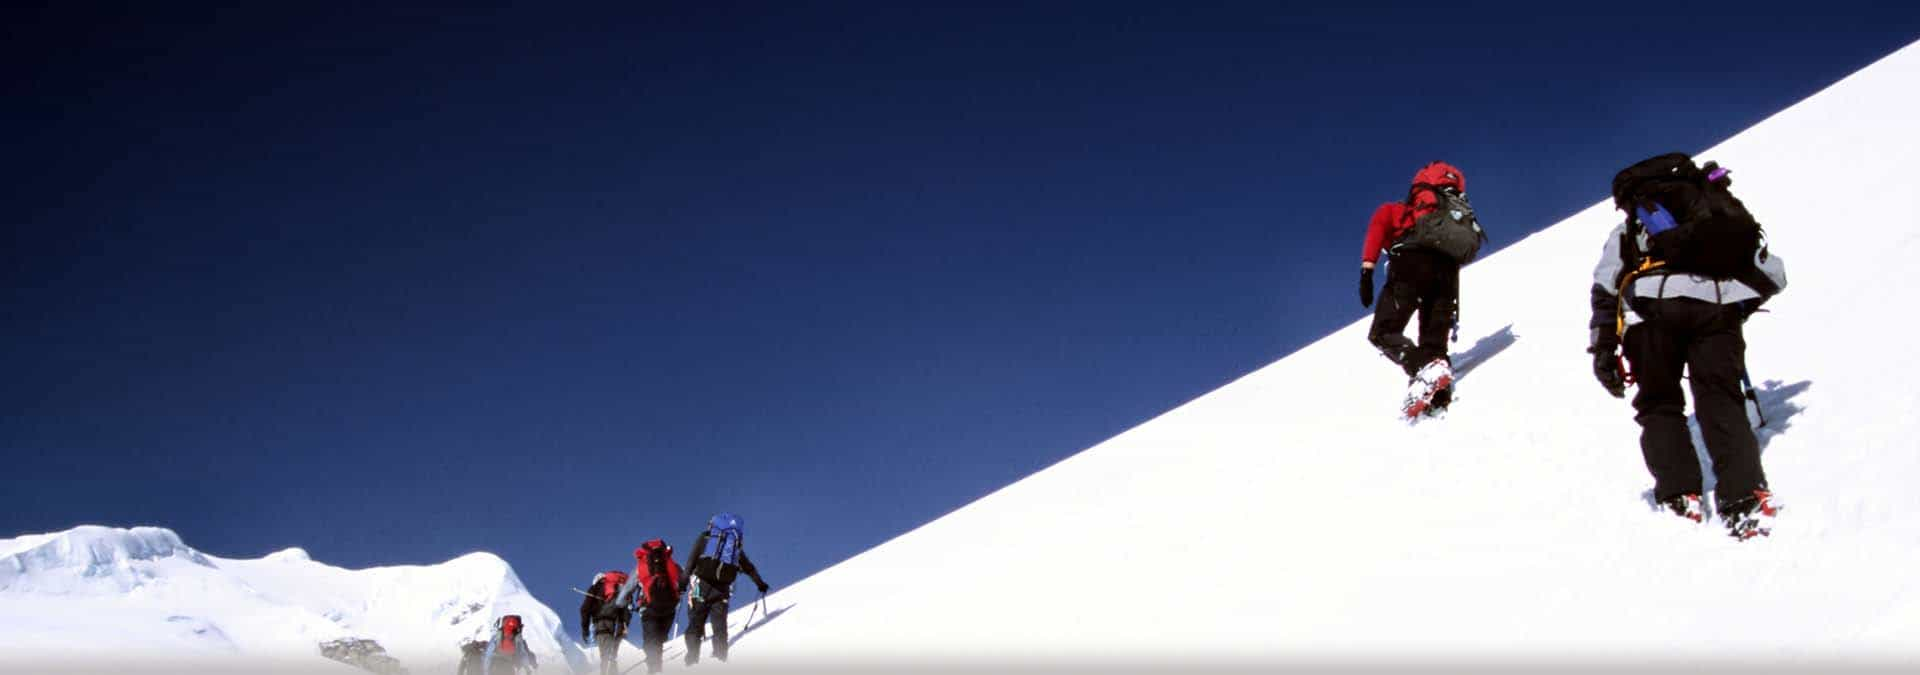 hikers climbing snow-covered mountain